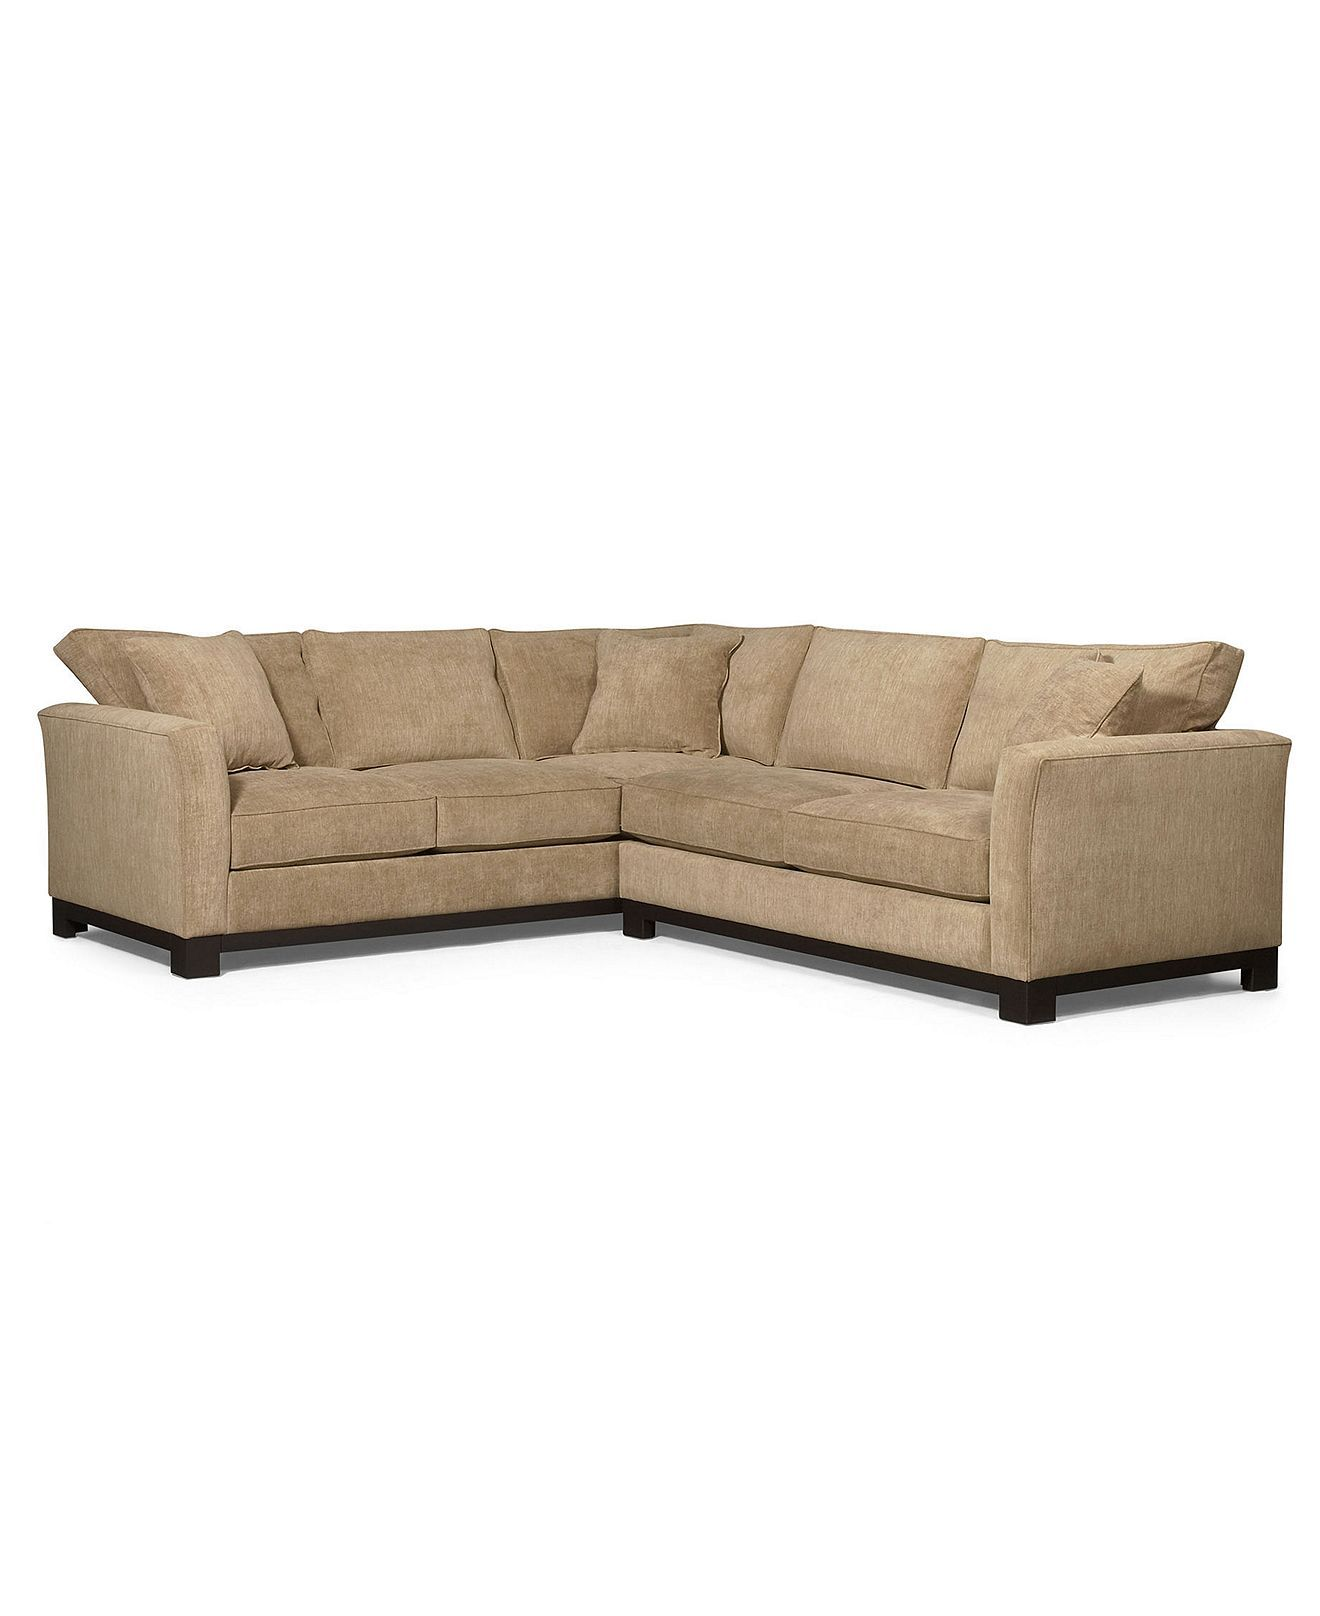 Kenton Fabric Sofa Parchment Small Modern Designs Sectional 2 Piece 107 Quotw X 94 Quotd 33 Quoth